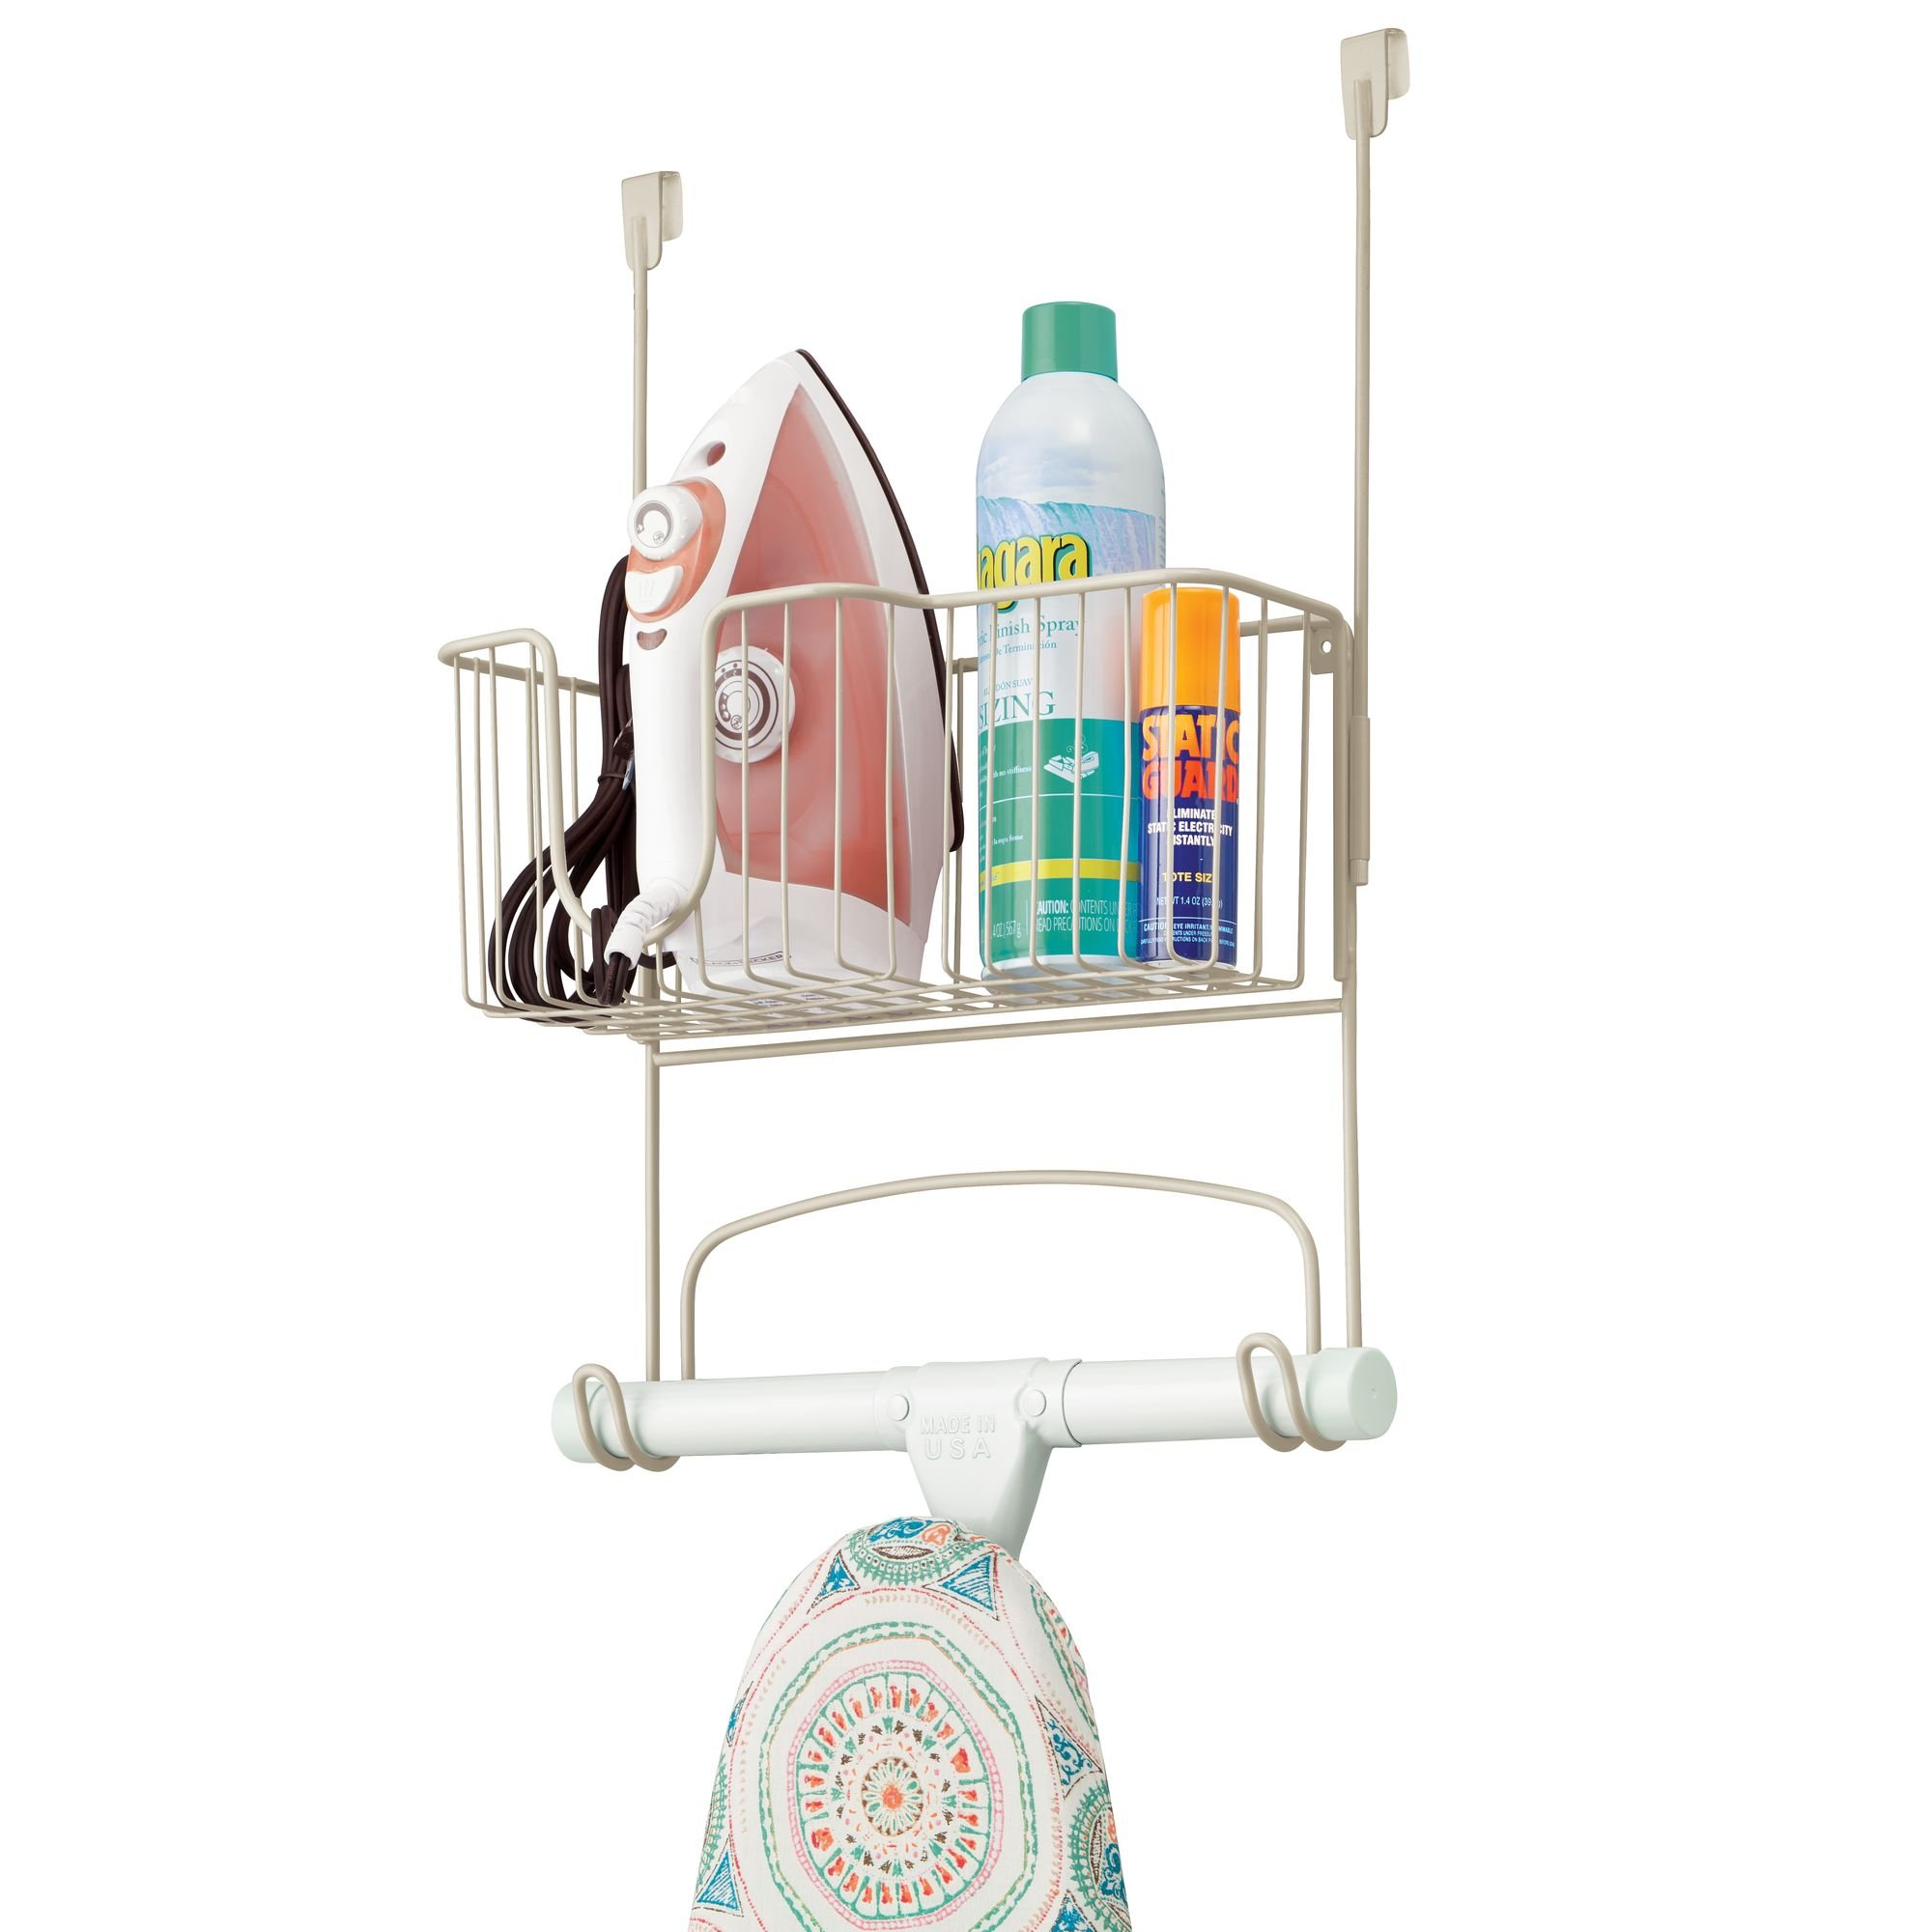 mDesign Ironing Board Holder with Large Storage Basket: Wall Mount or Hang Over The Door - Holds Iron, Board, Spray Bottles, Starch, Fabric Refresher Iron for Laundry Rooms – Durable Steel, Satin by mDesign